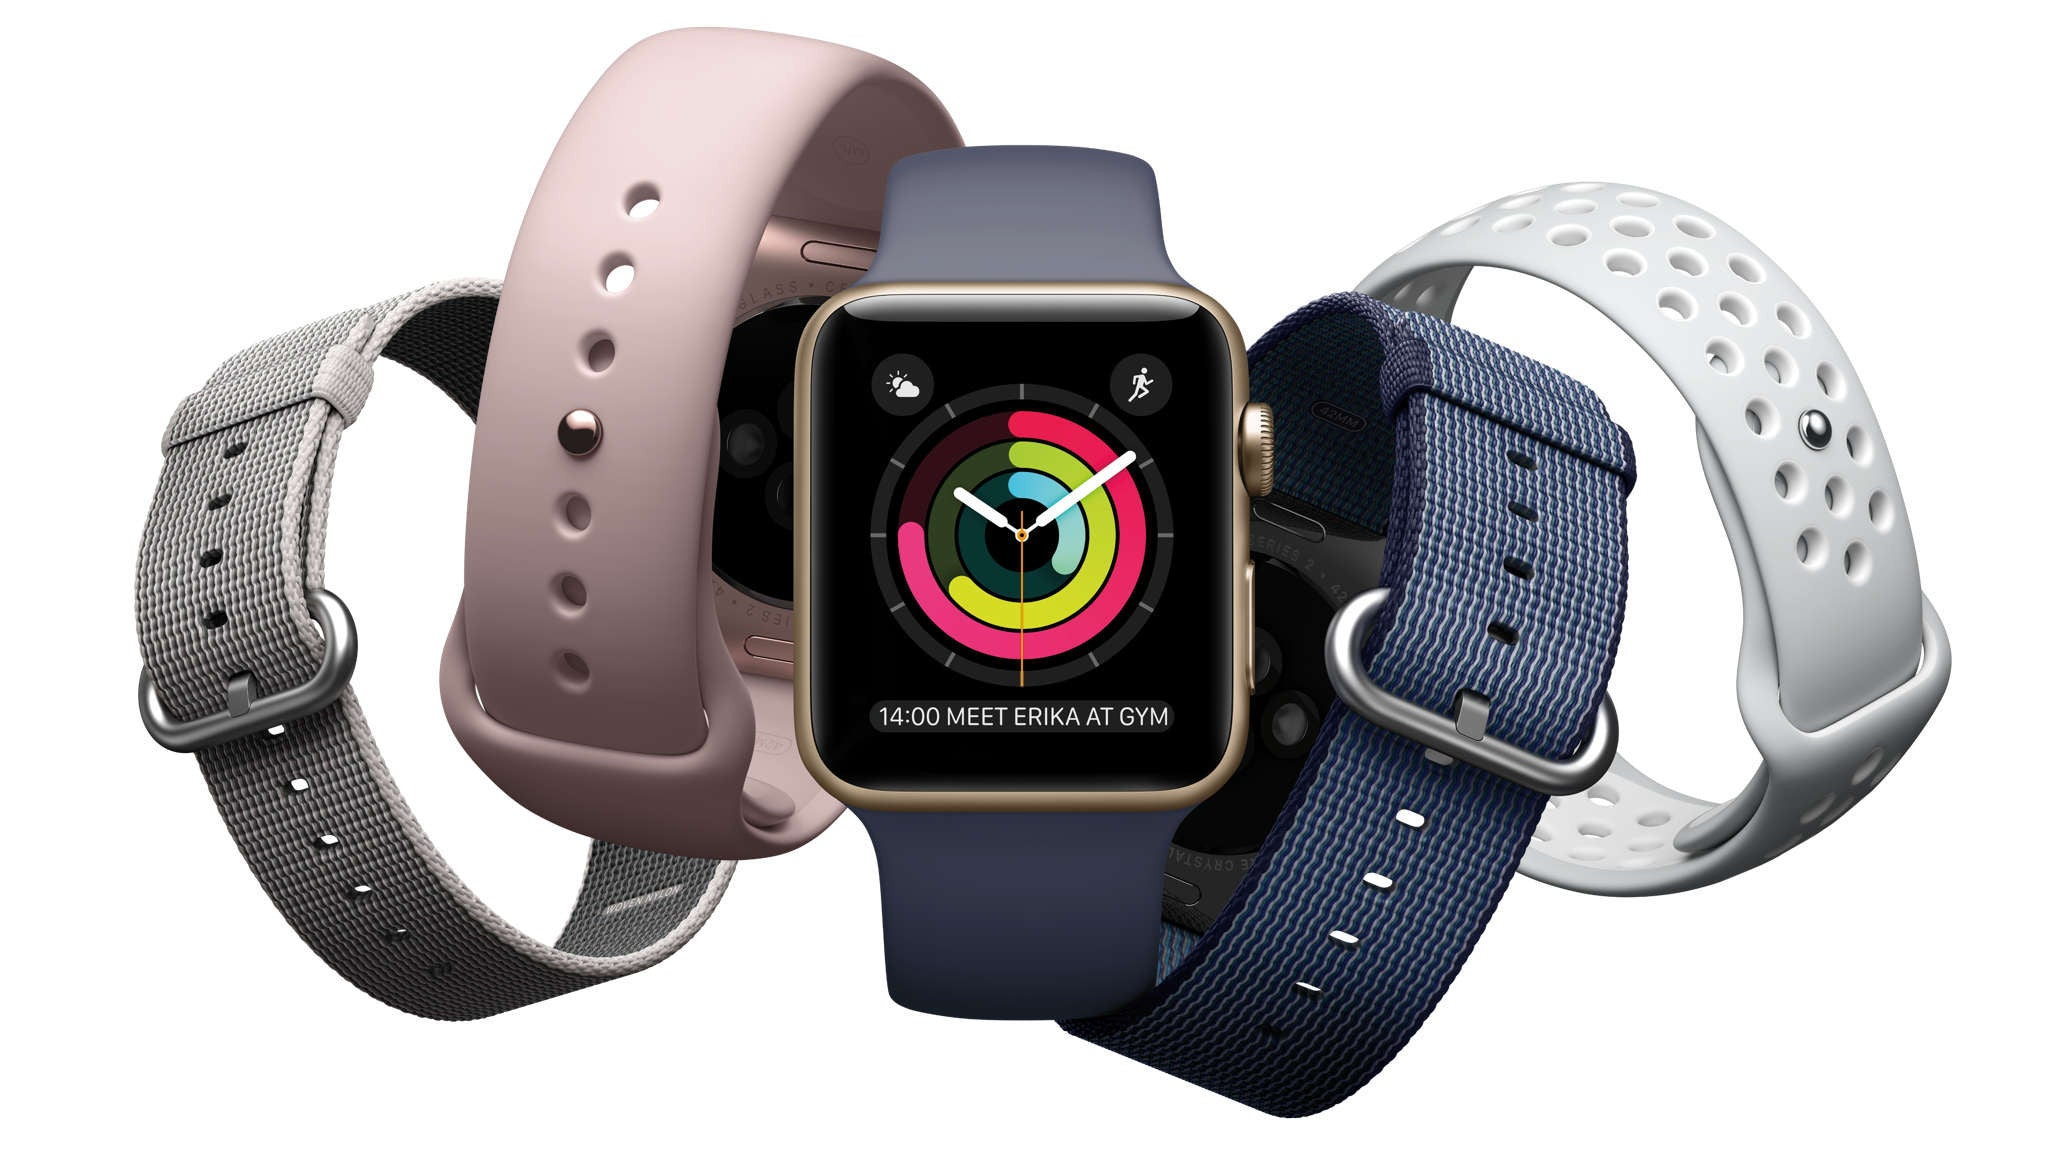 Express yourself with new Apple Watch bands